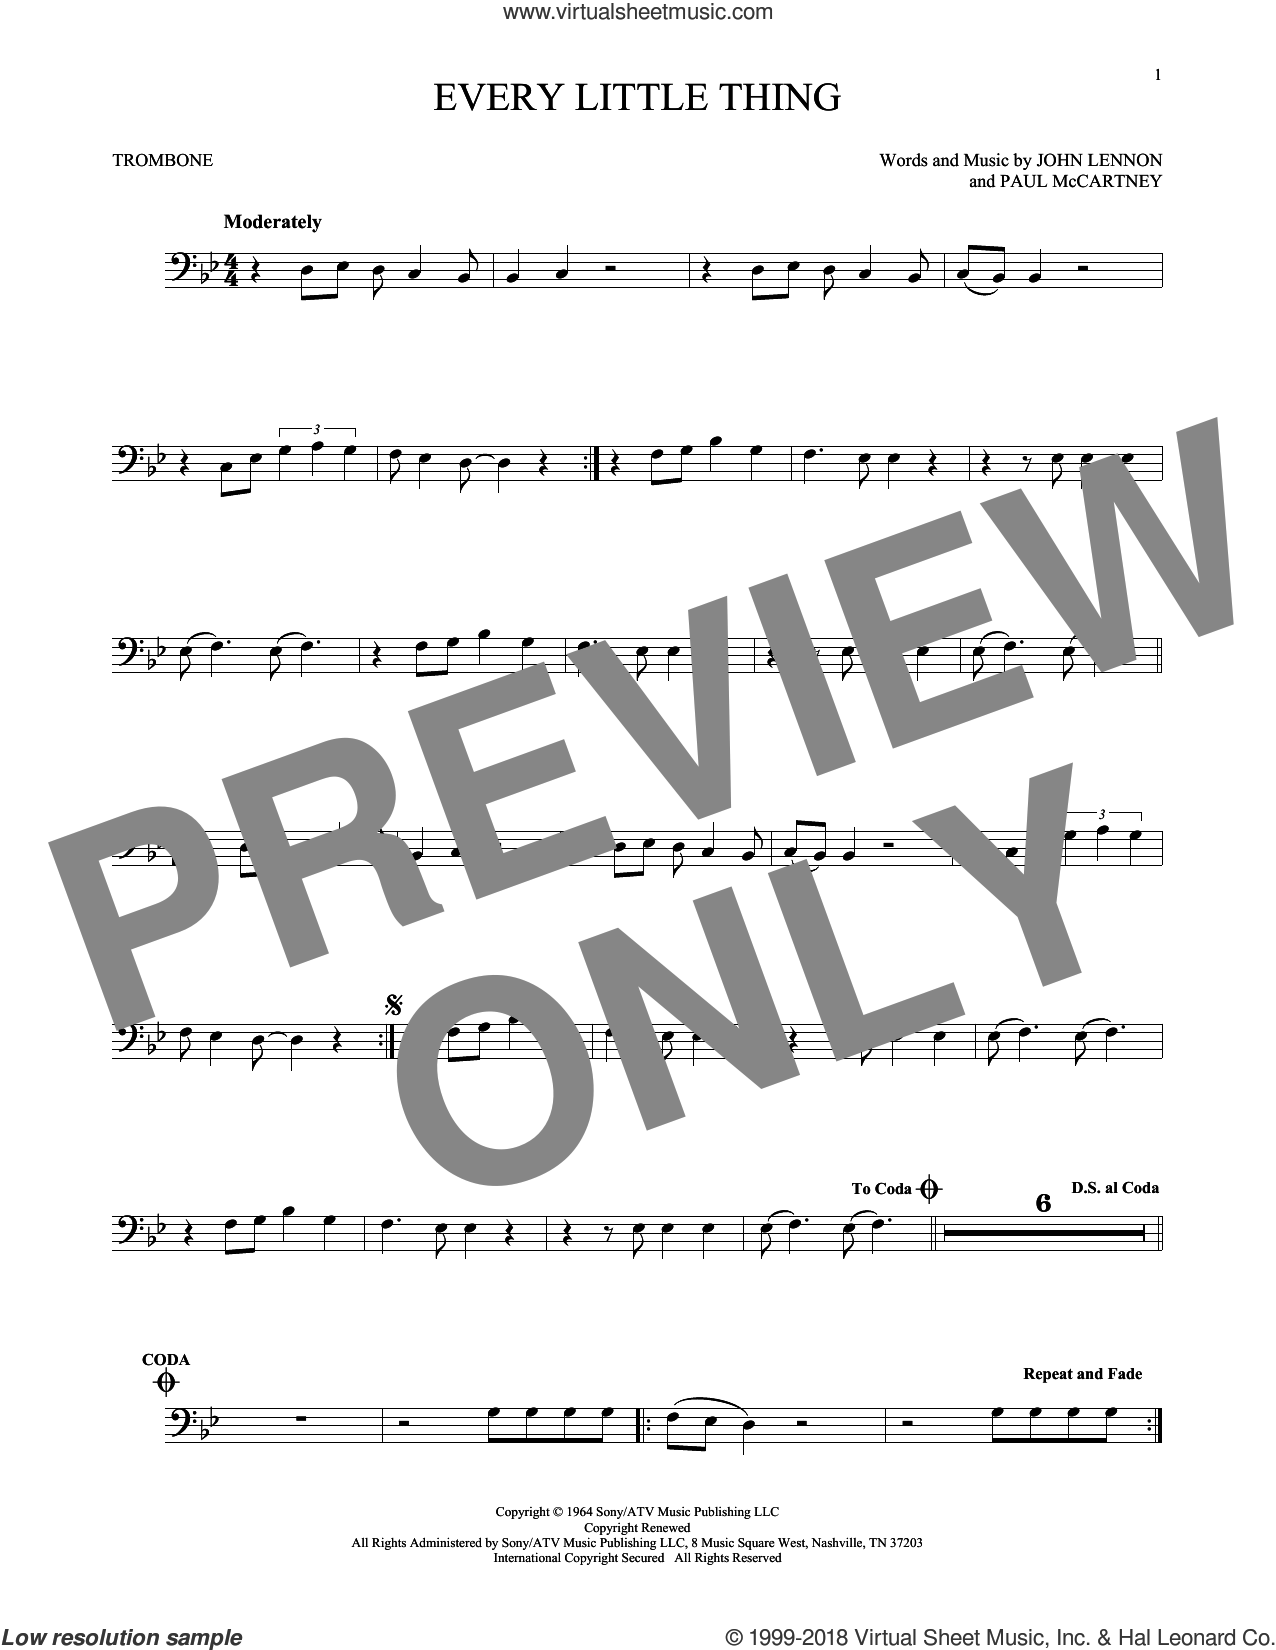 Every Little Thing sheet music for trombone solo by The Beatles, John Lennon and Paul McCartney, intermediate